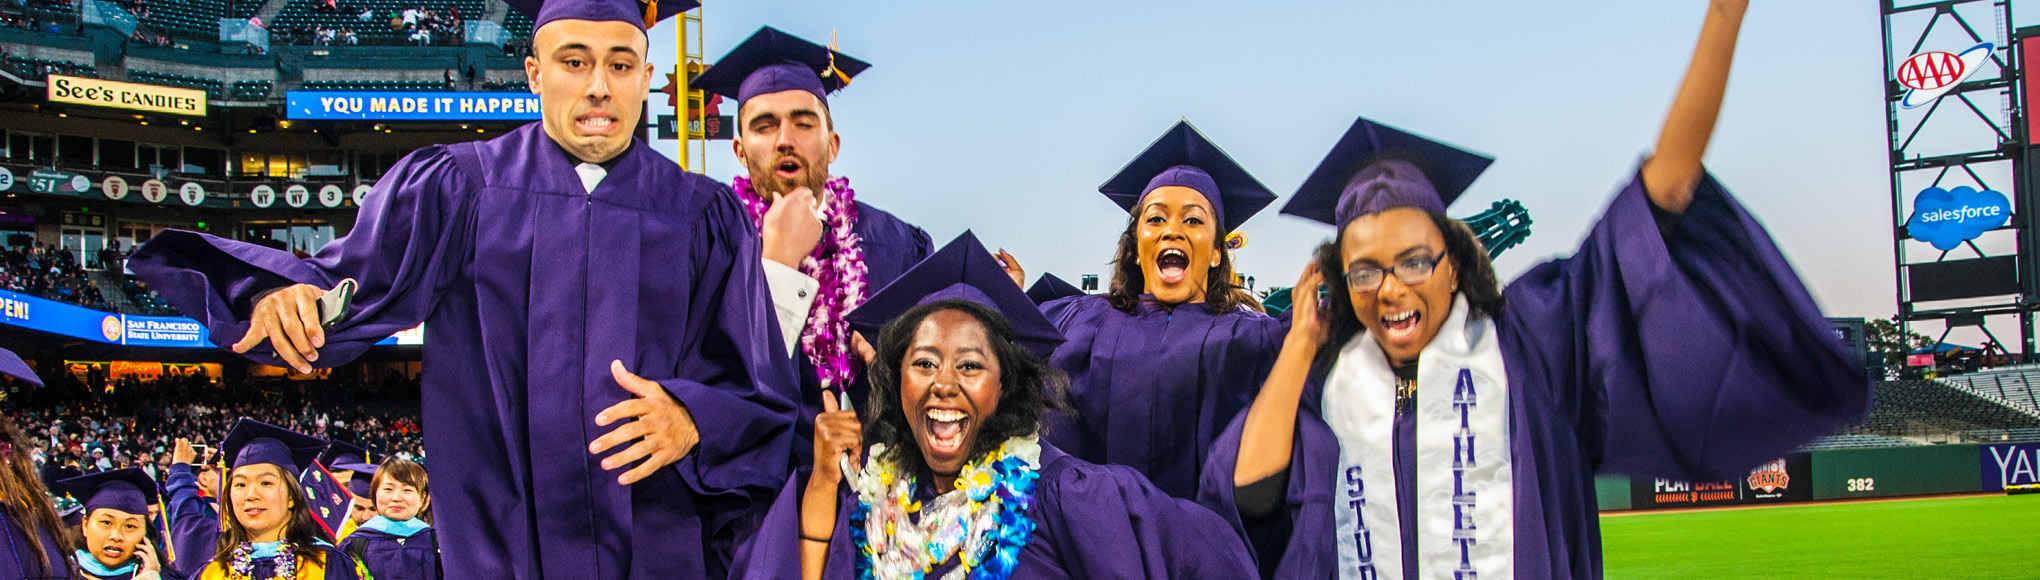 Sfsu Graduation 2020.Information For Students Commencement